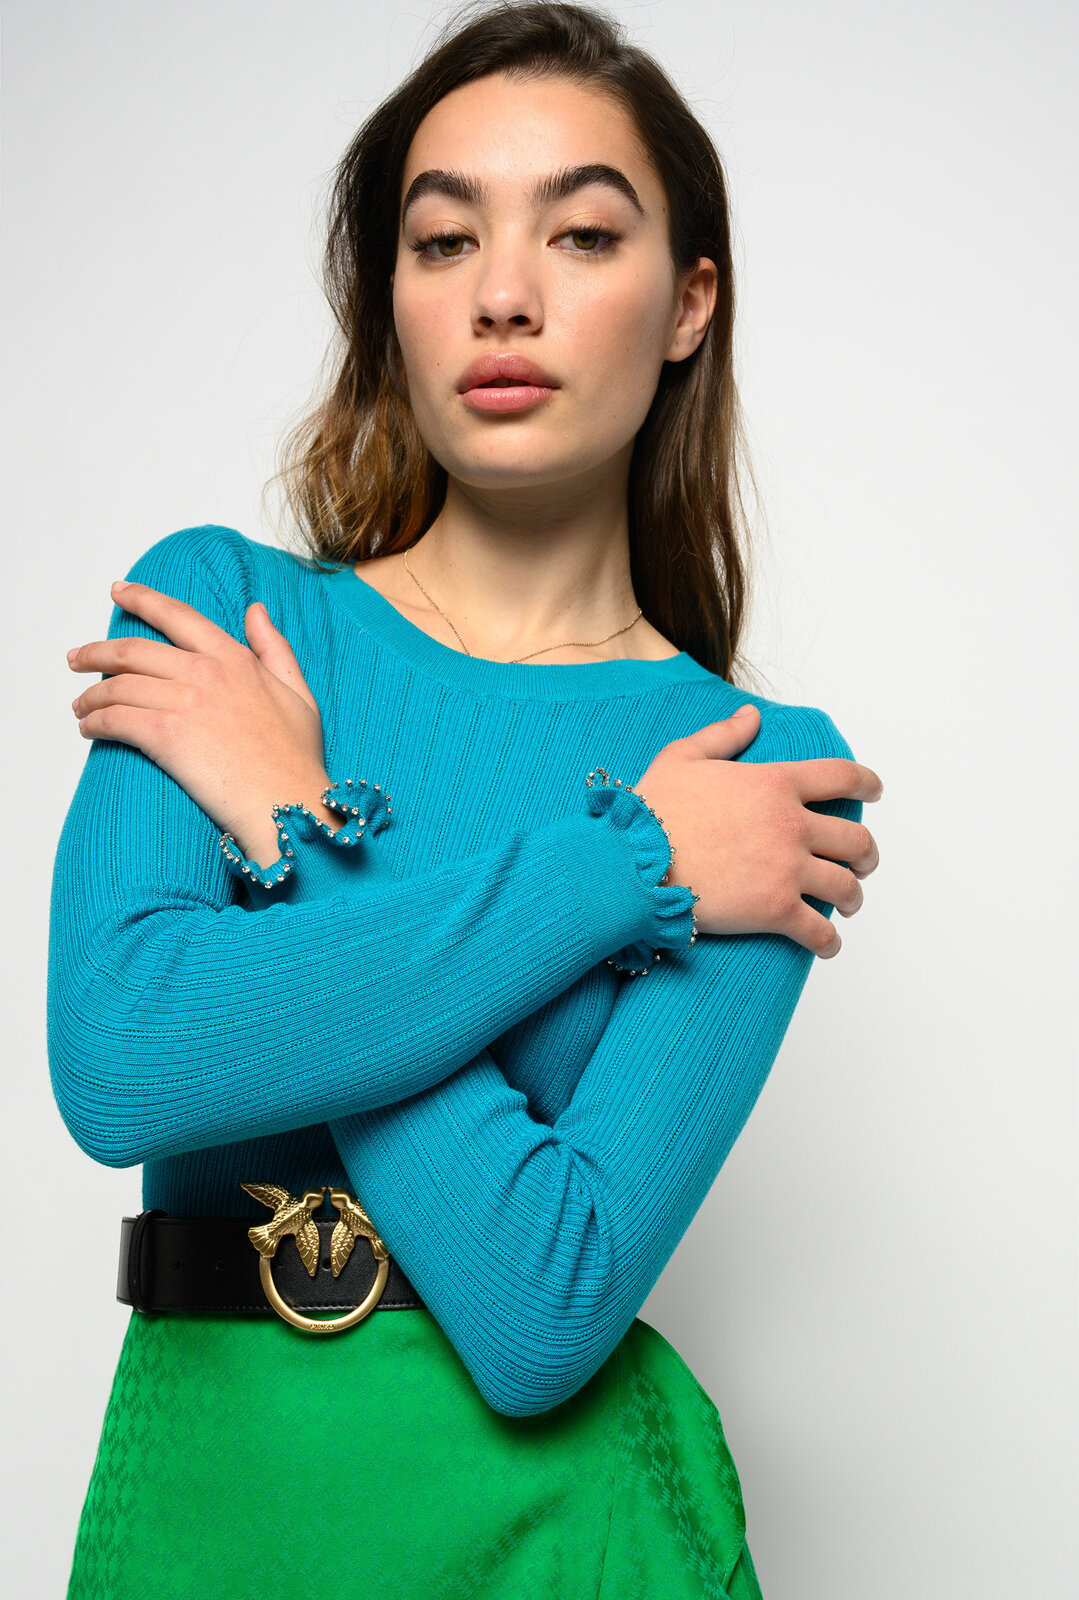 Sweater With Rouches And Rhinestones On The Cuffs - Pinko